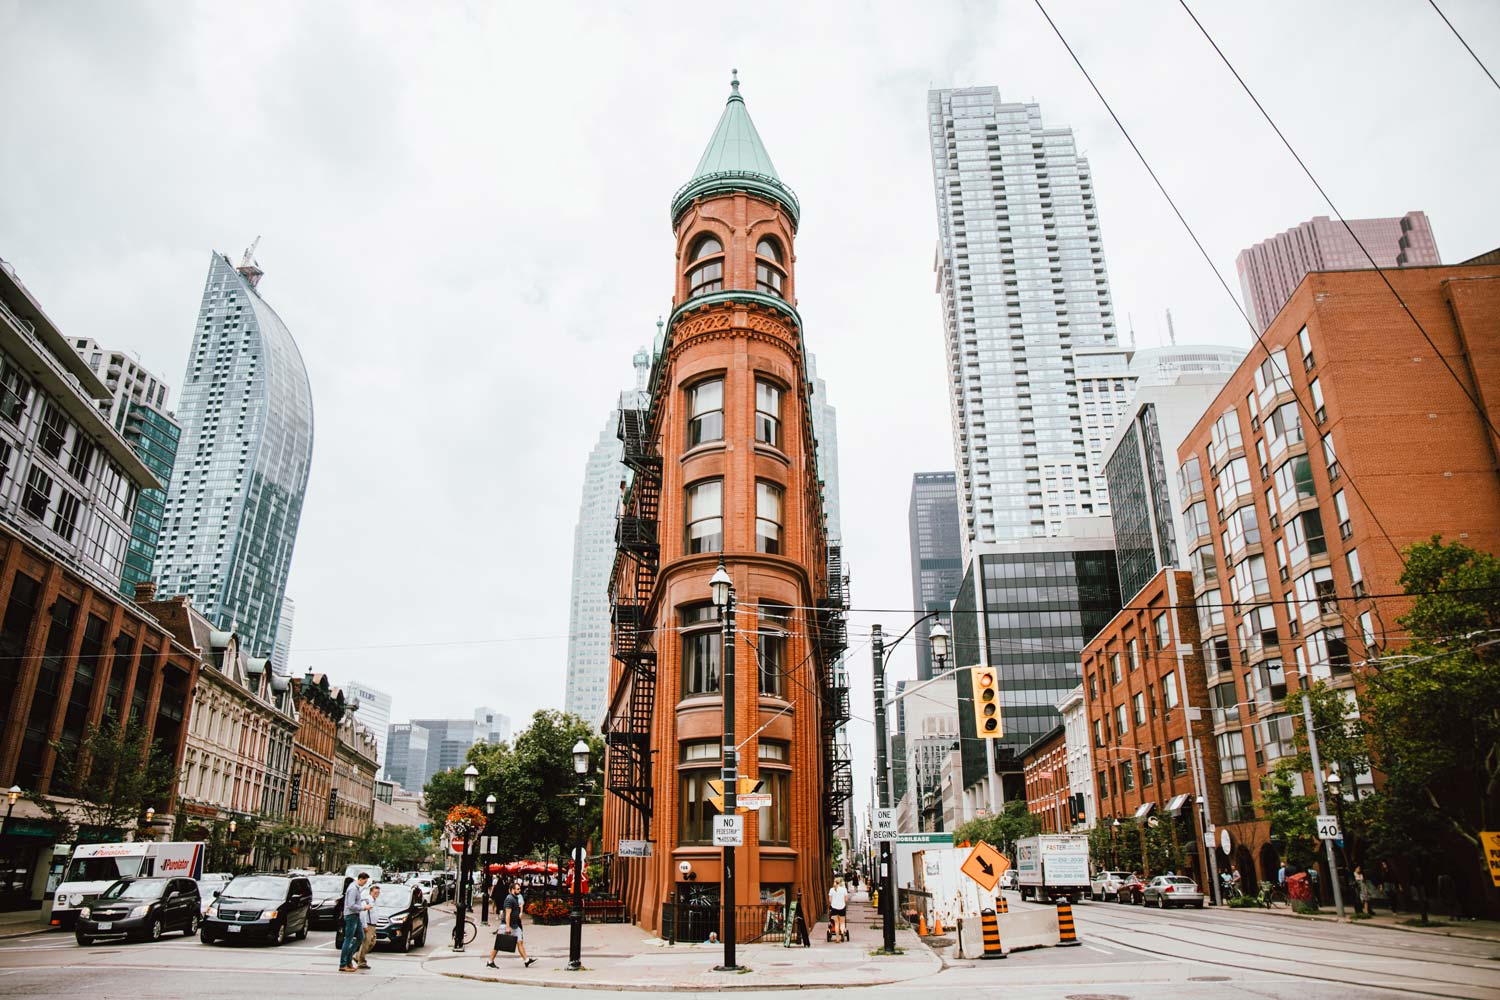 photo gooderham building flatiron